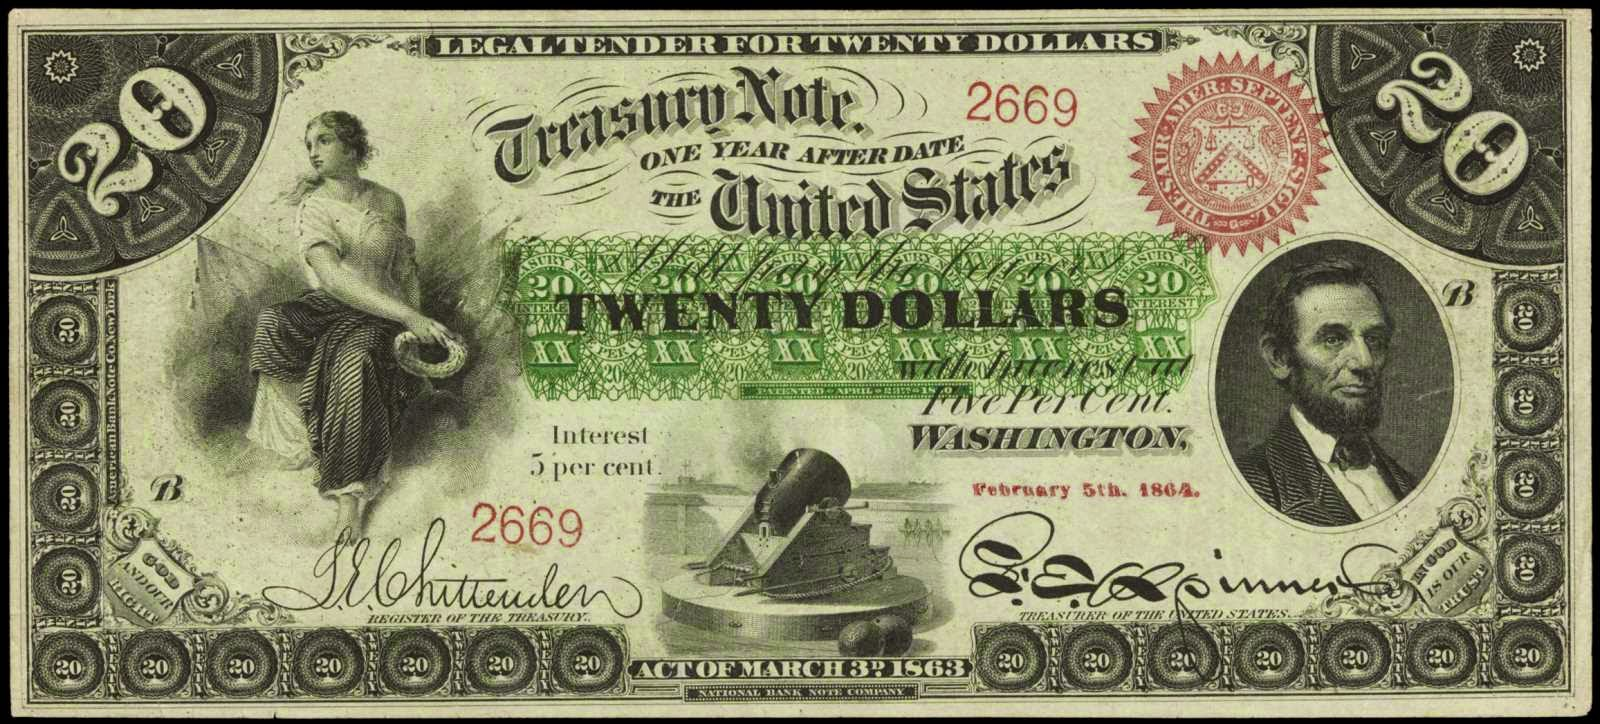 1863 US 20 Dollar bill, Interest Bearing Note